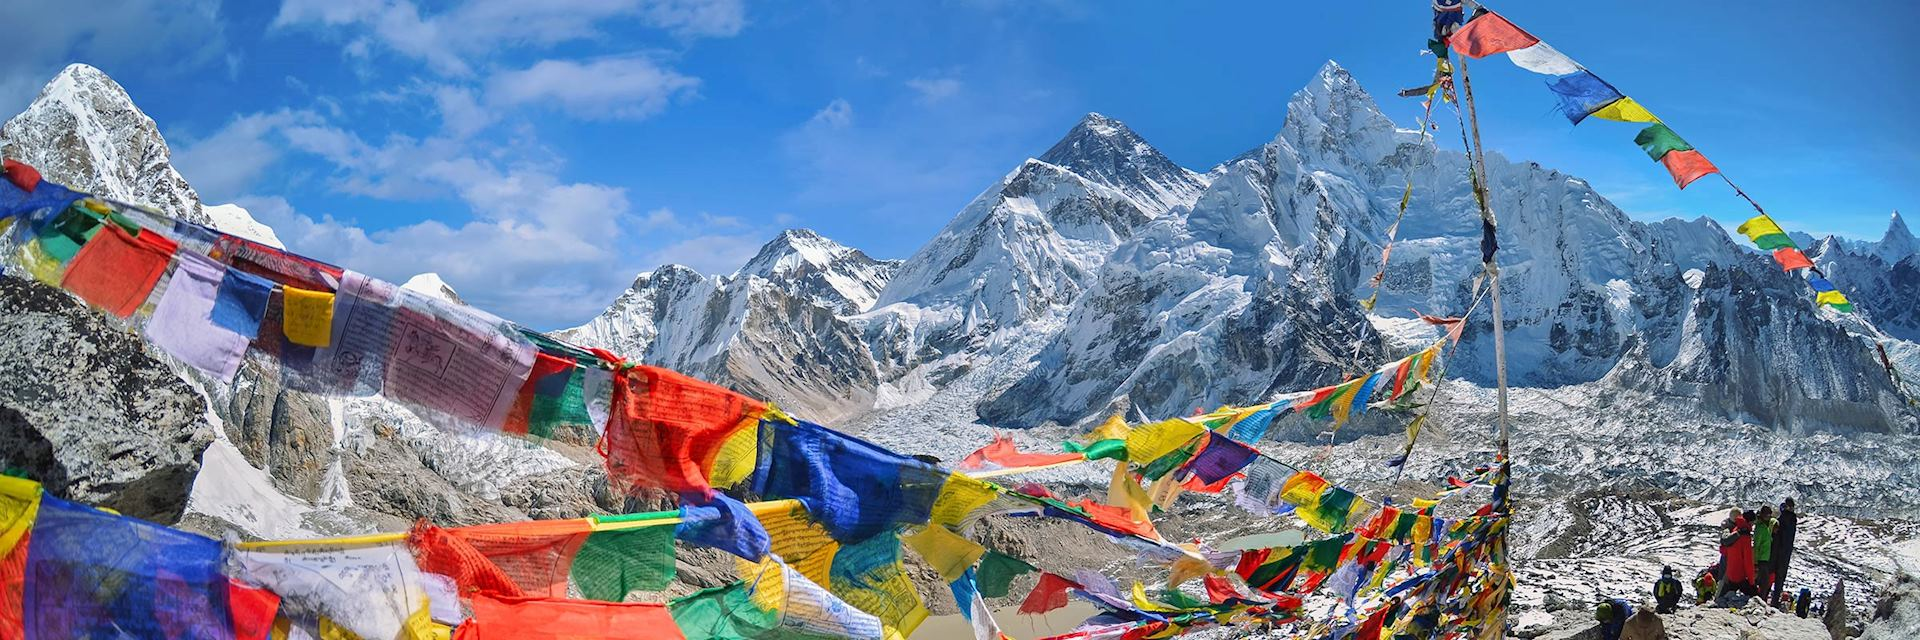 Mt Everest, Nepal